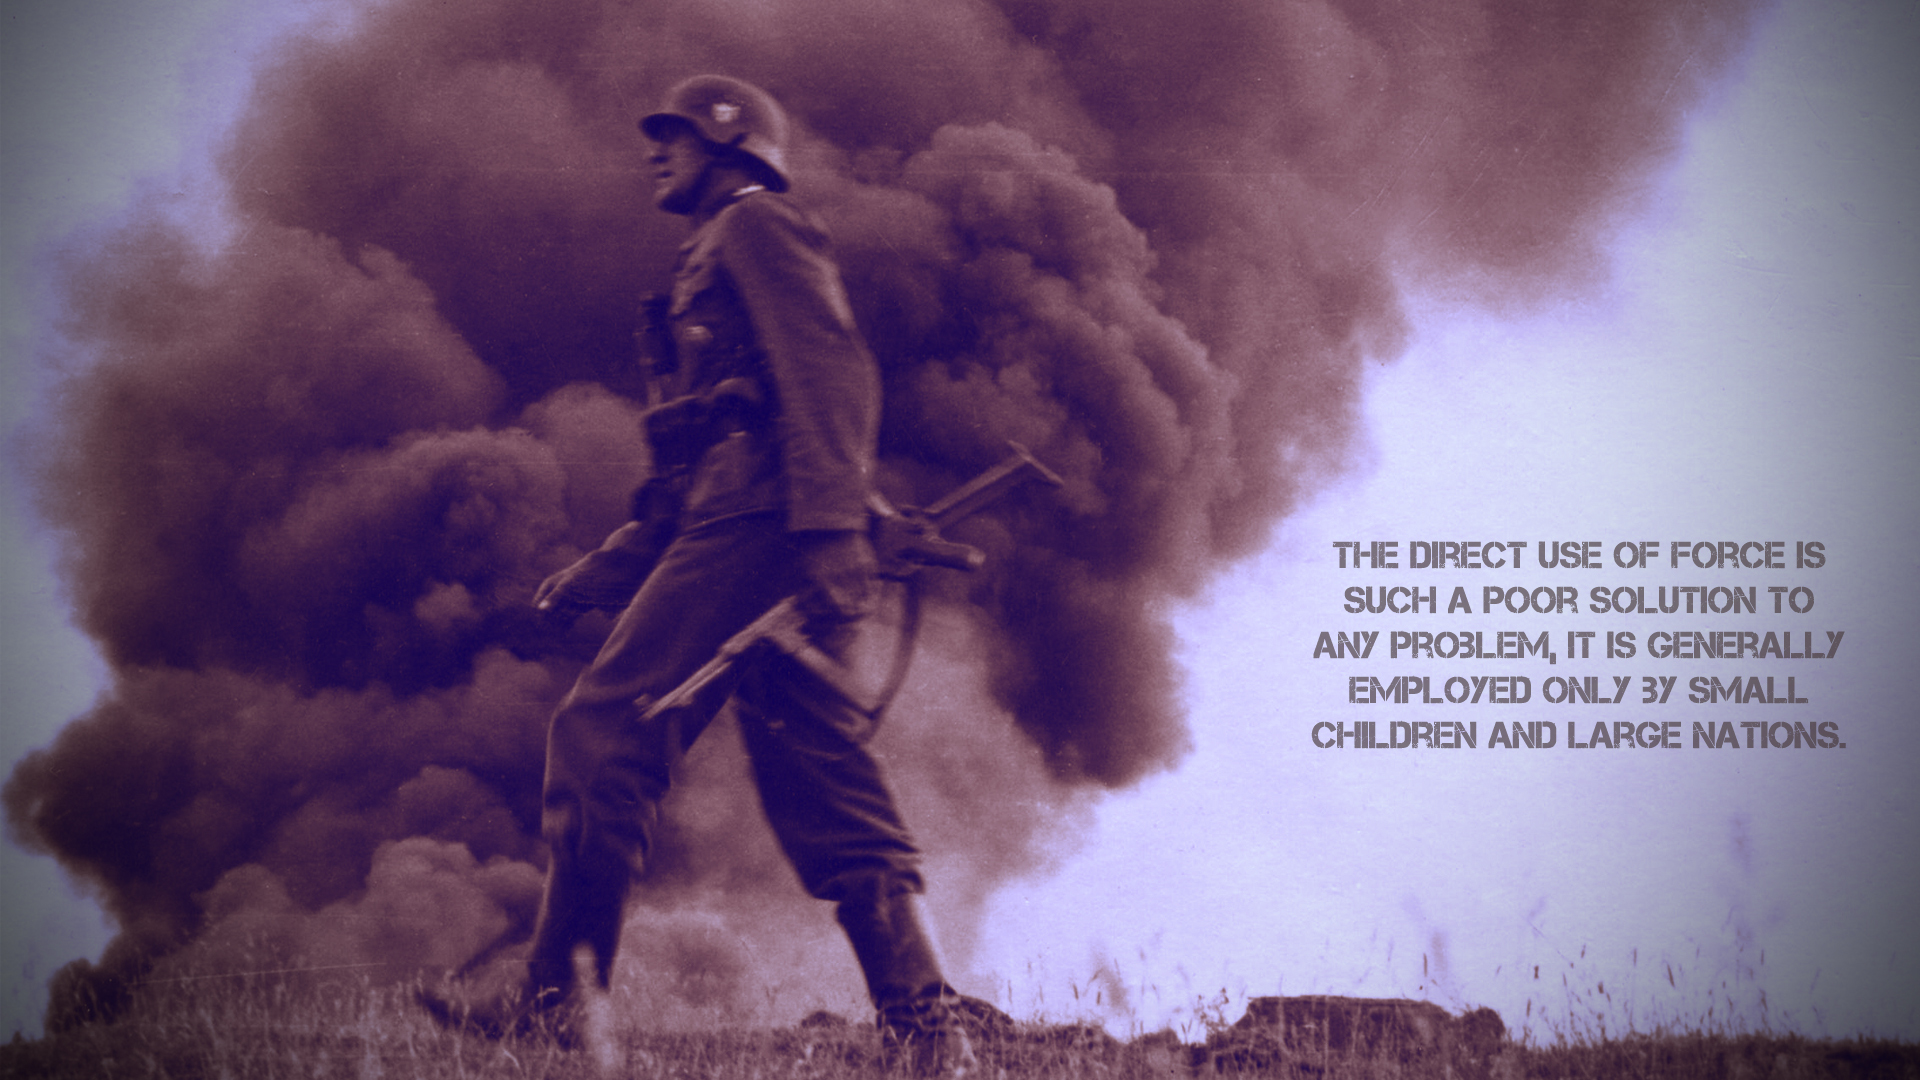 soldiers War smoke Quotes HD Wallpaper